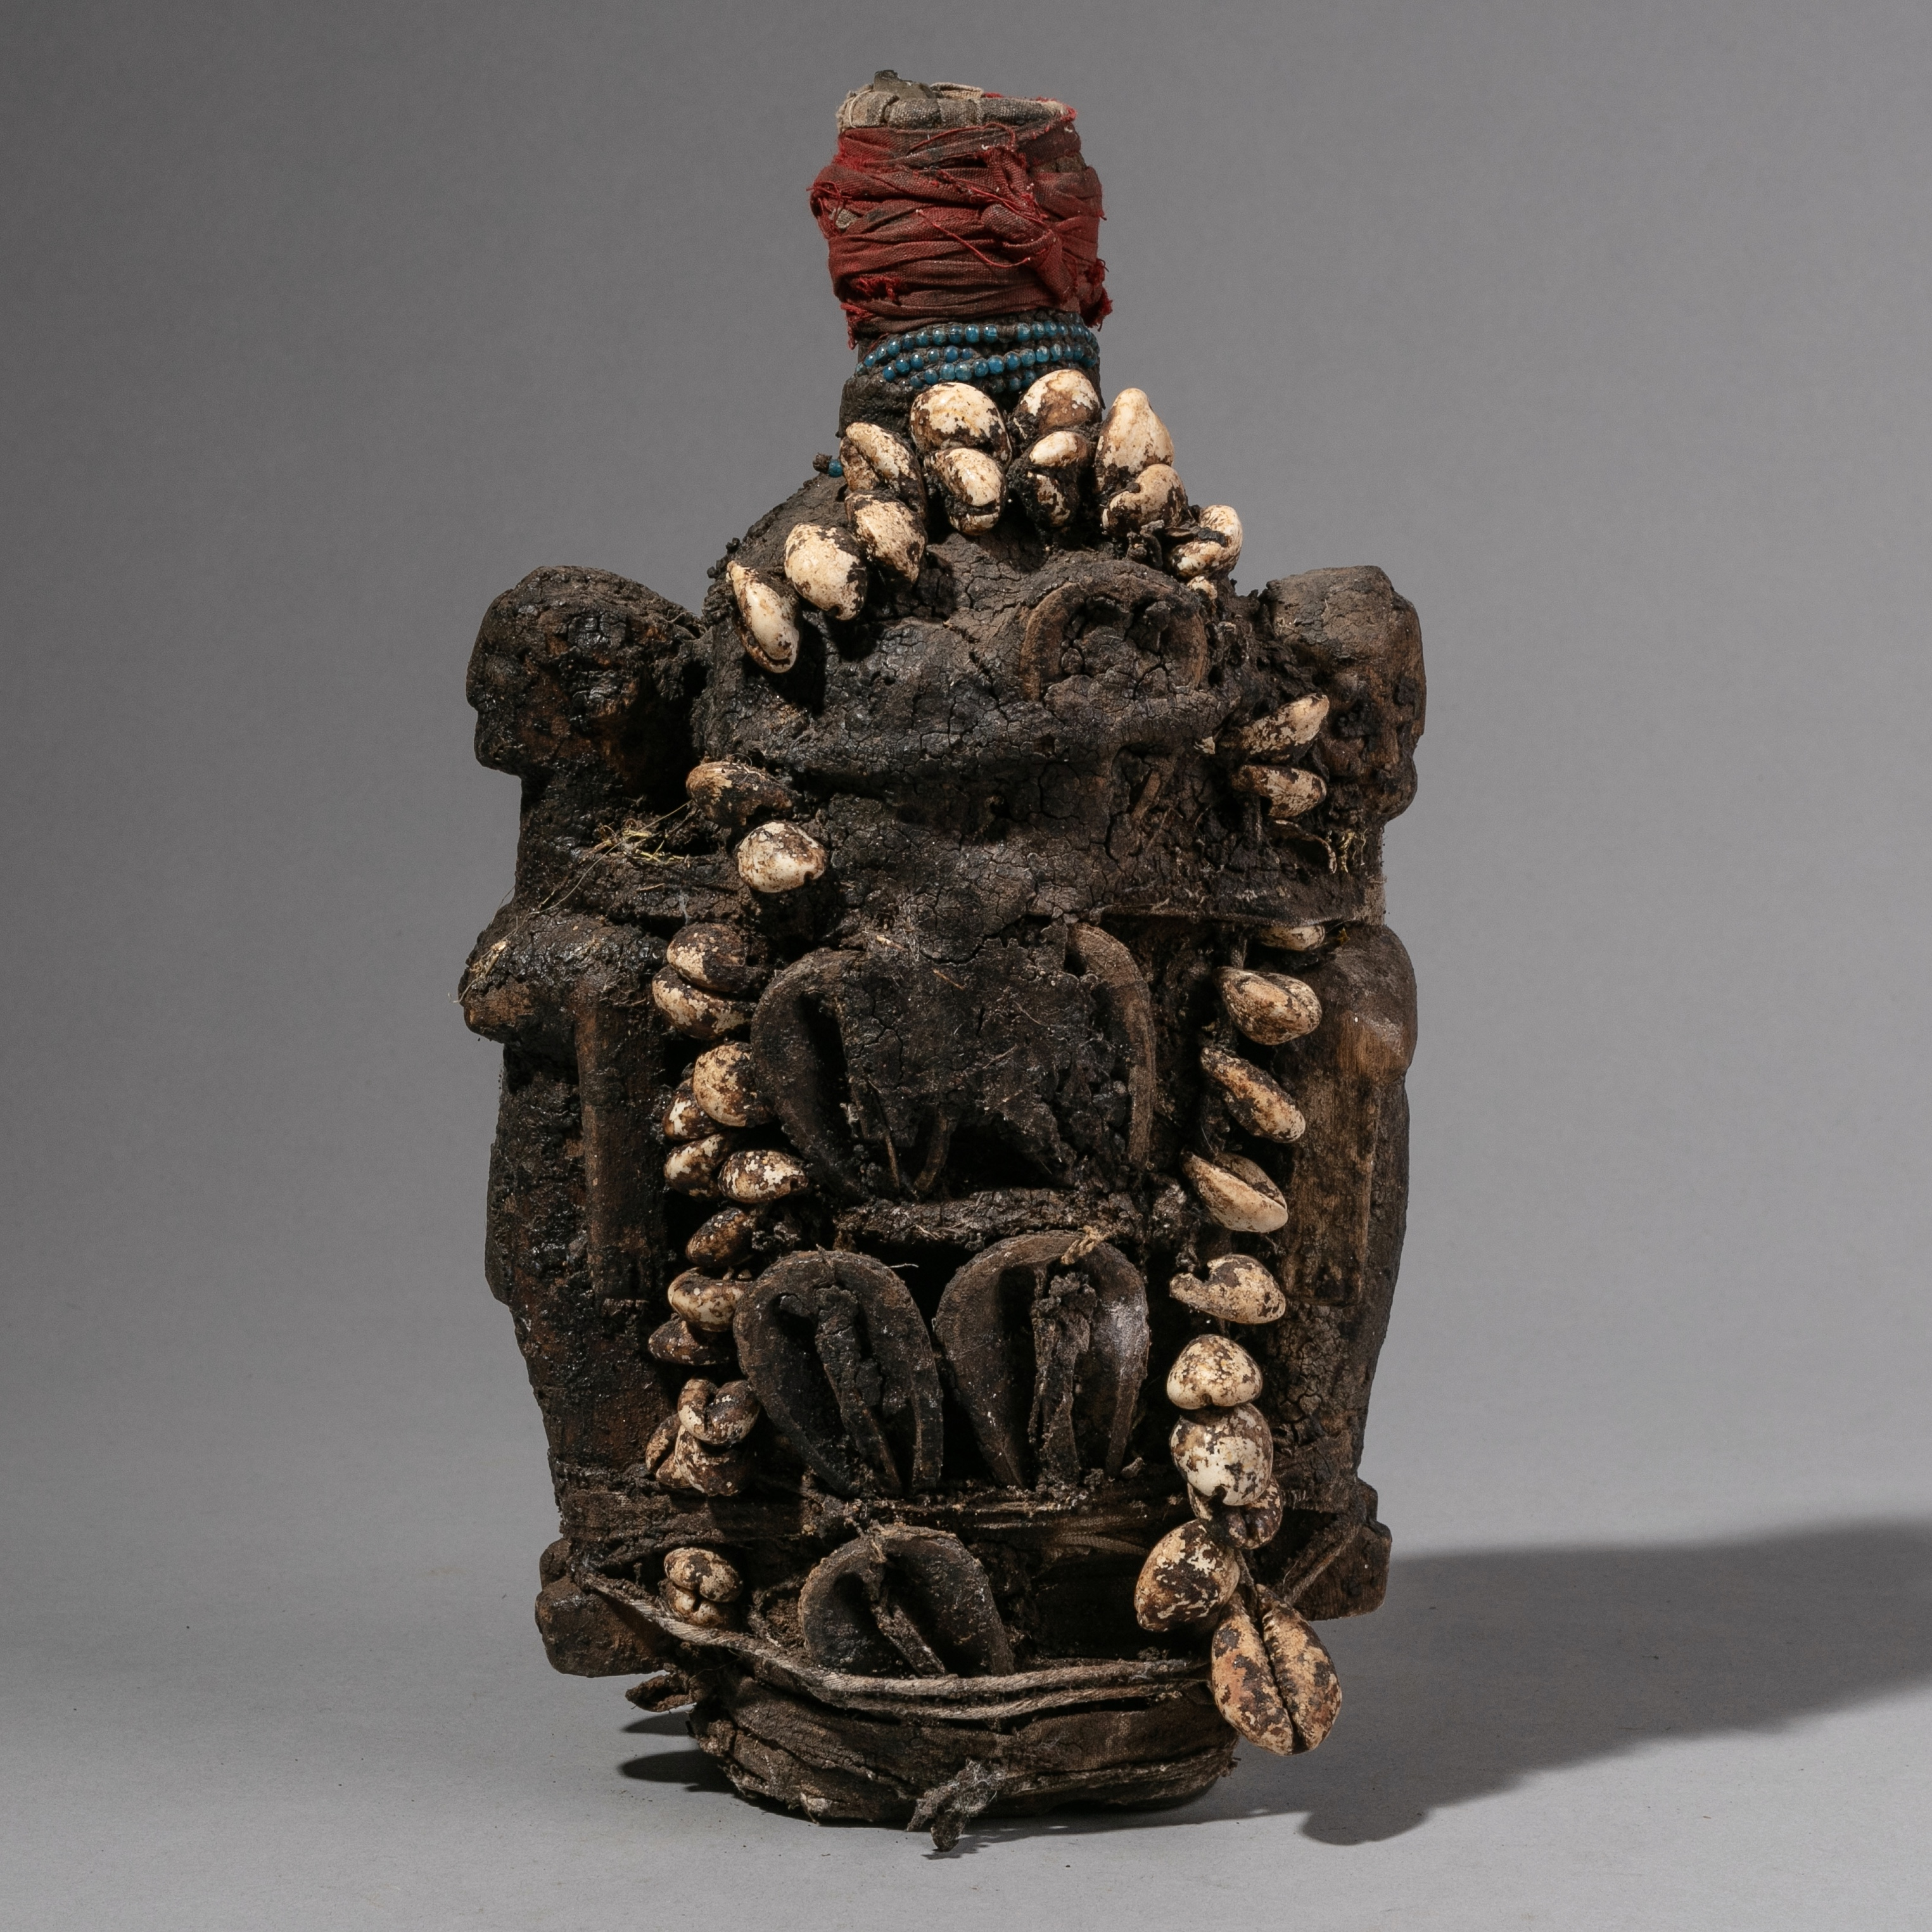 SDA CHARMING BOTTLE EWE TRIBE FETISH OBJECT WITH  TWIN FIGURES ( No 1370)